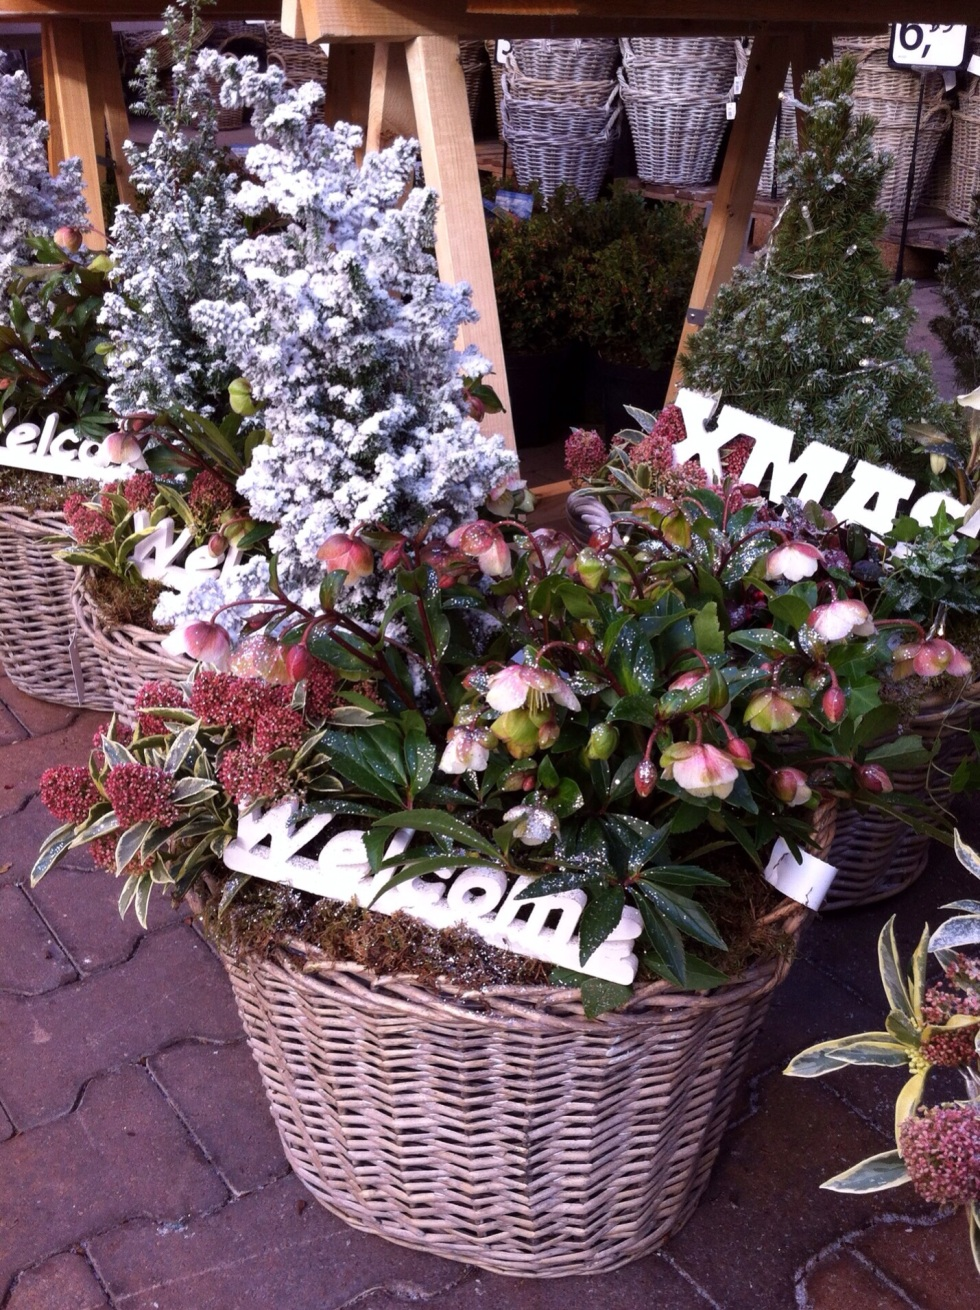 Christmas basket of hellebores and skimma, Amsterdam, December 2013